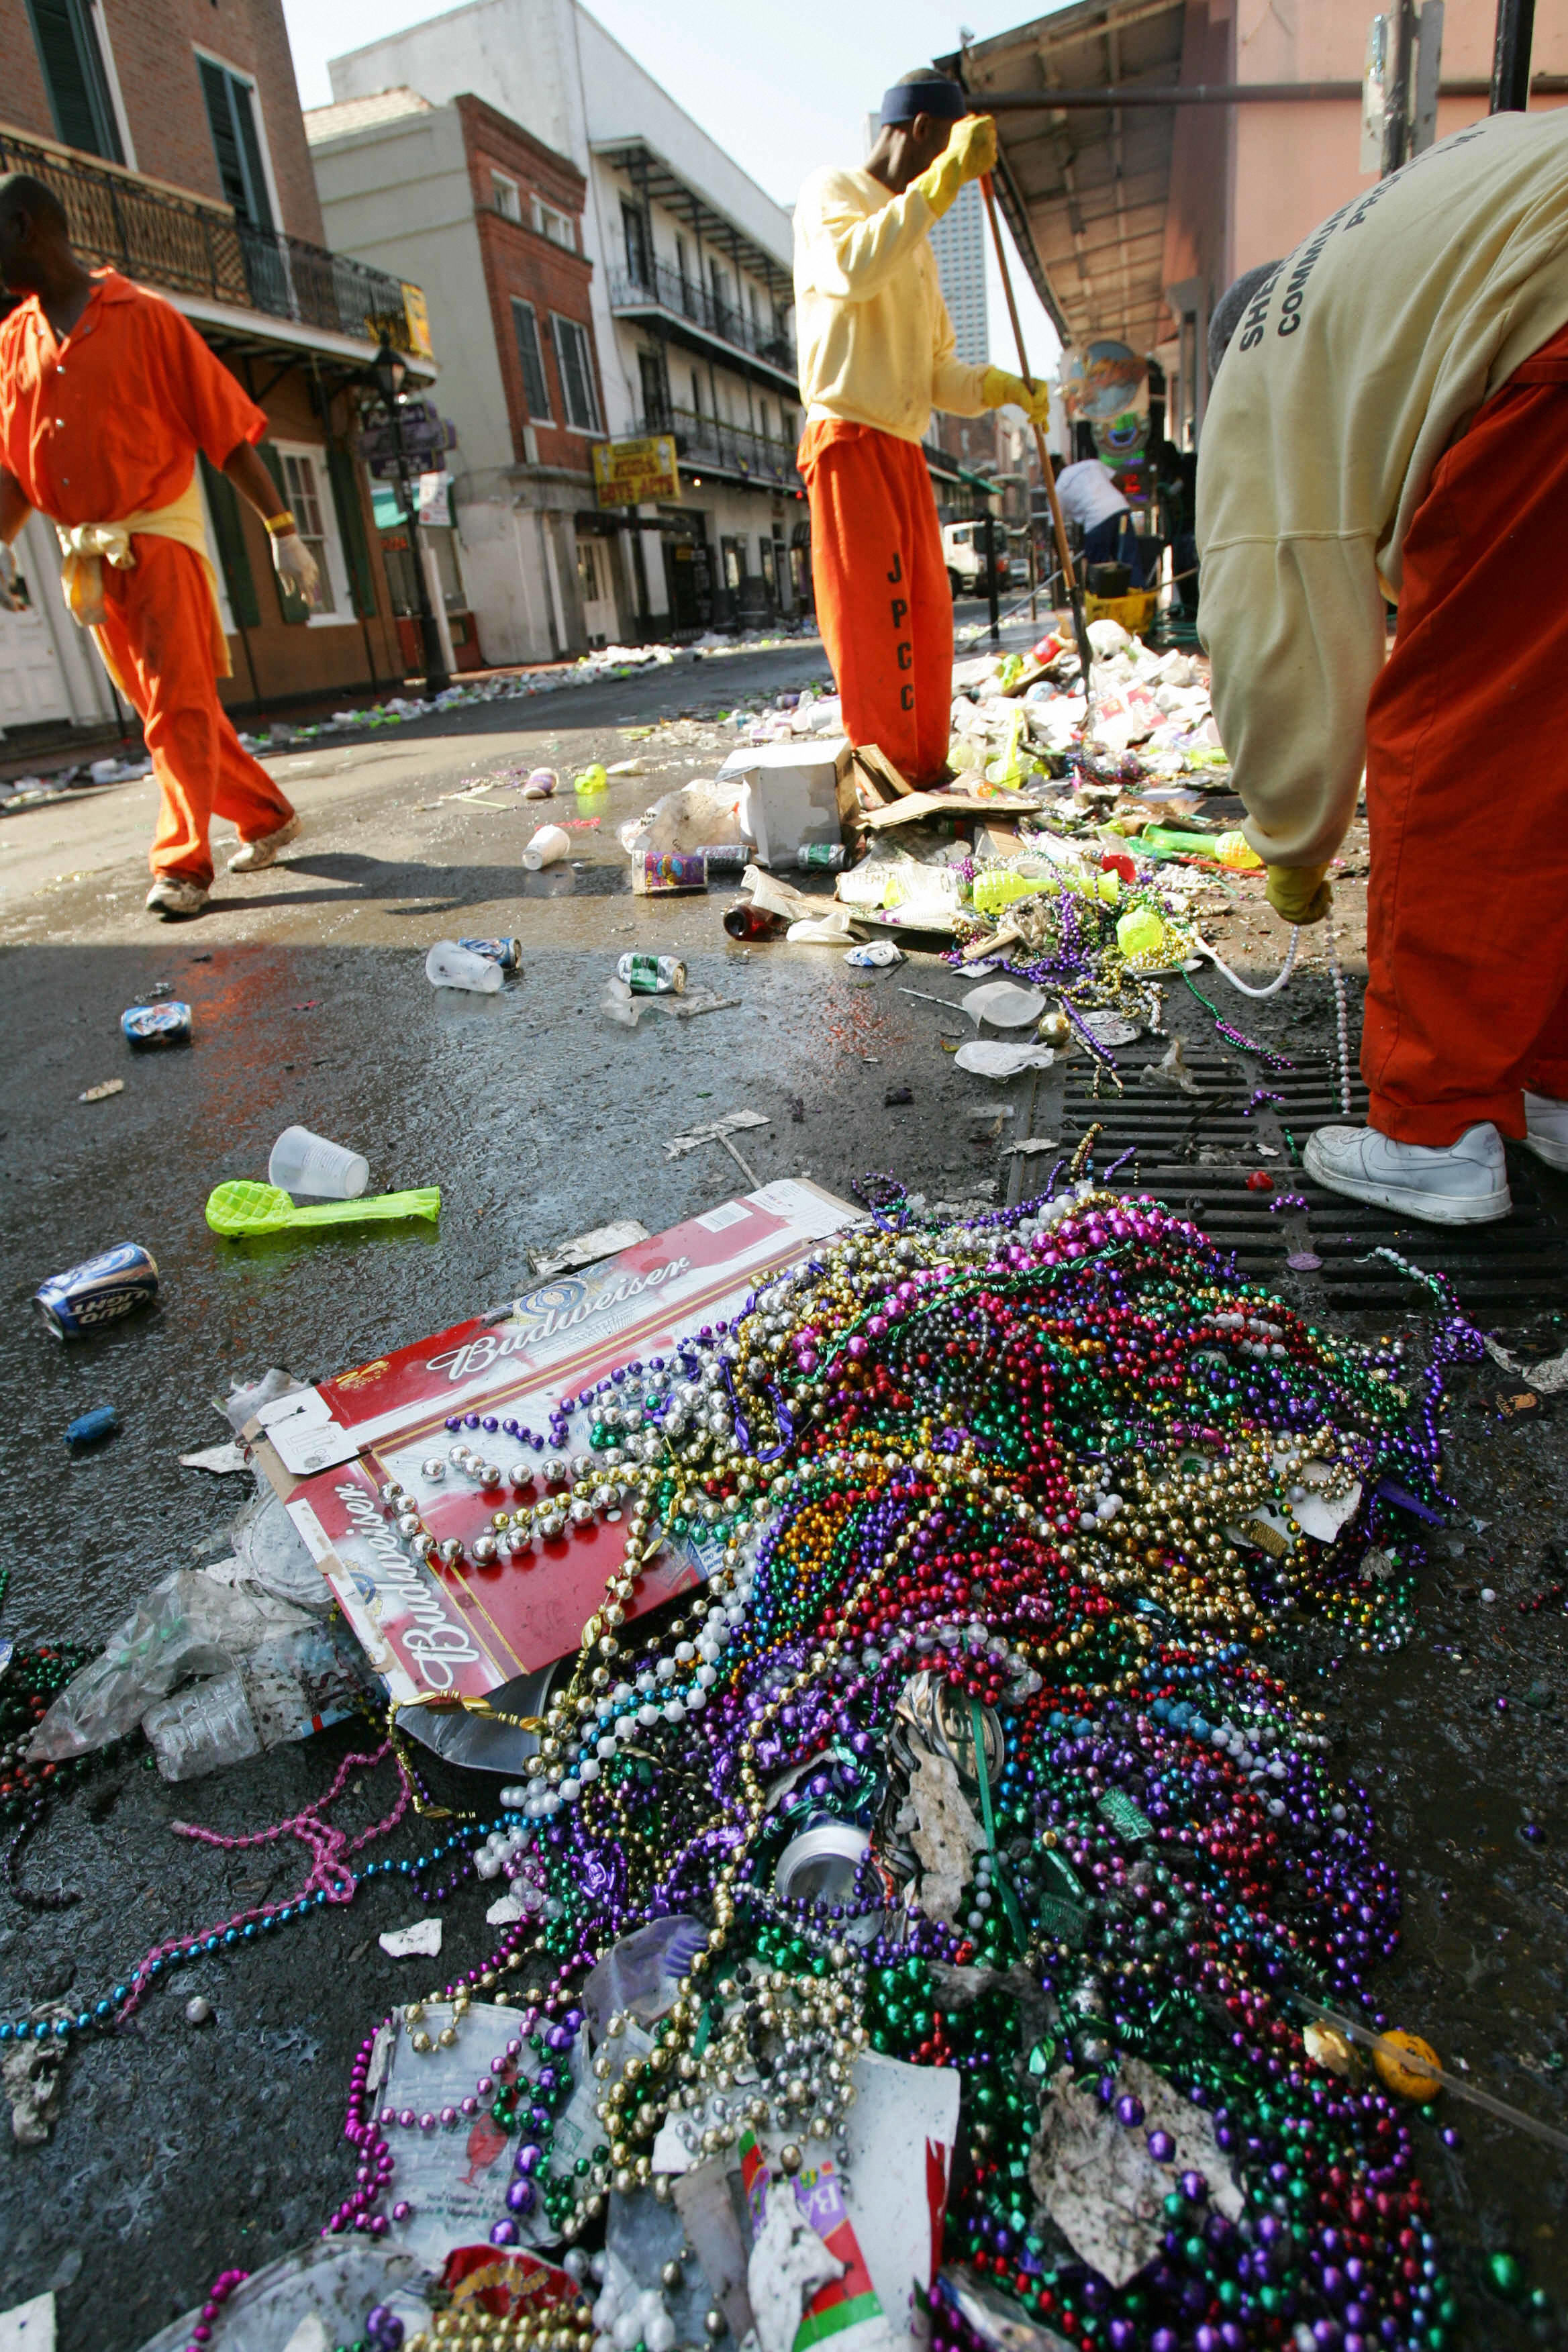 New Orleans, UNITED STATES: Inmates from a community service program clean Bourbon Street 01 March 2006 in the French Quarter of New Orleans, one day after Mardi Gras. It was New Orlean's first Mardi Gras since Hurricane Katrina. AFP PHOTO / Robyn Beck (Photo credit should read )